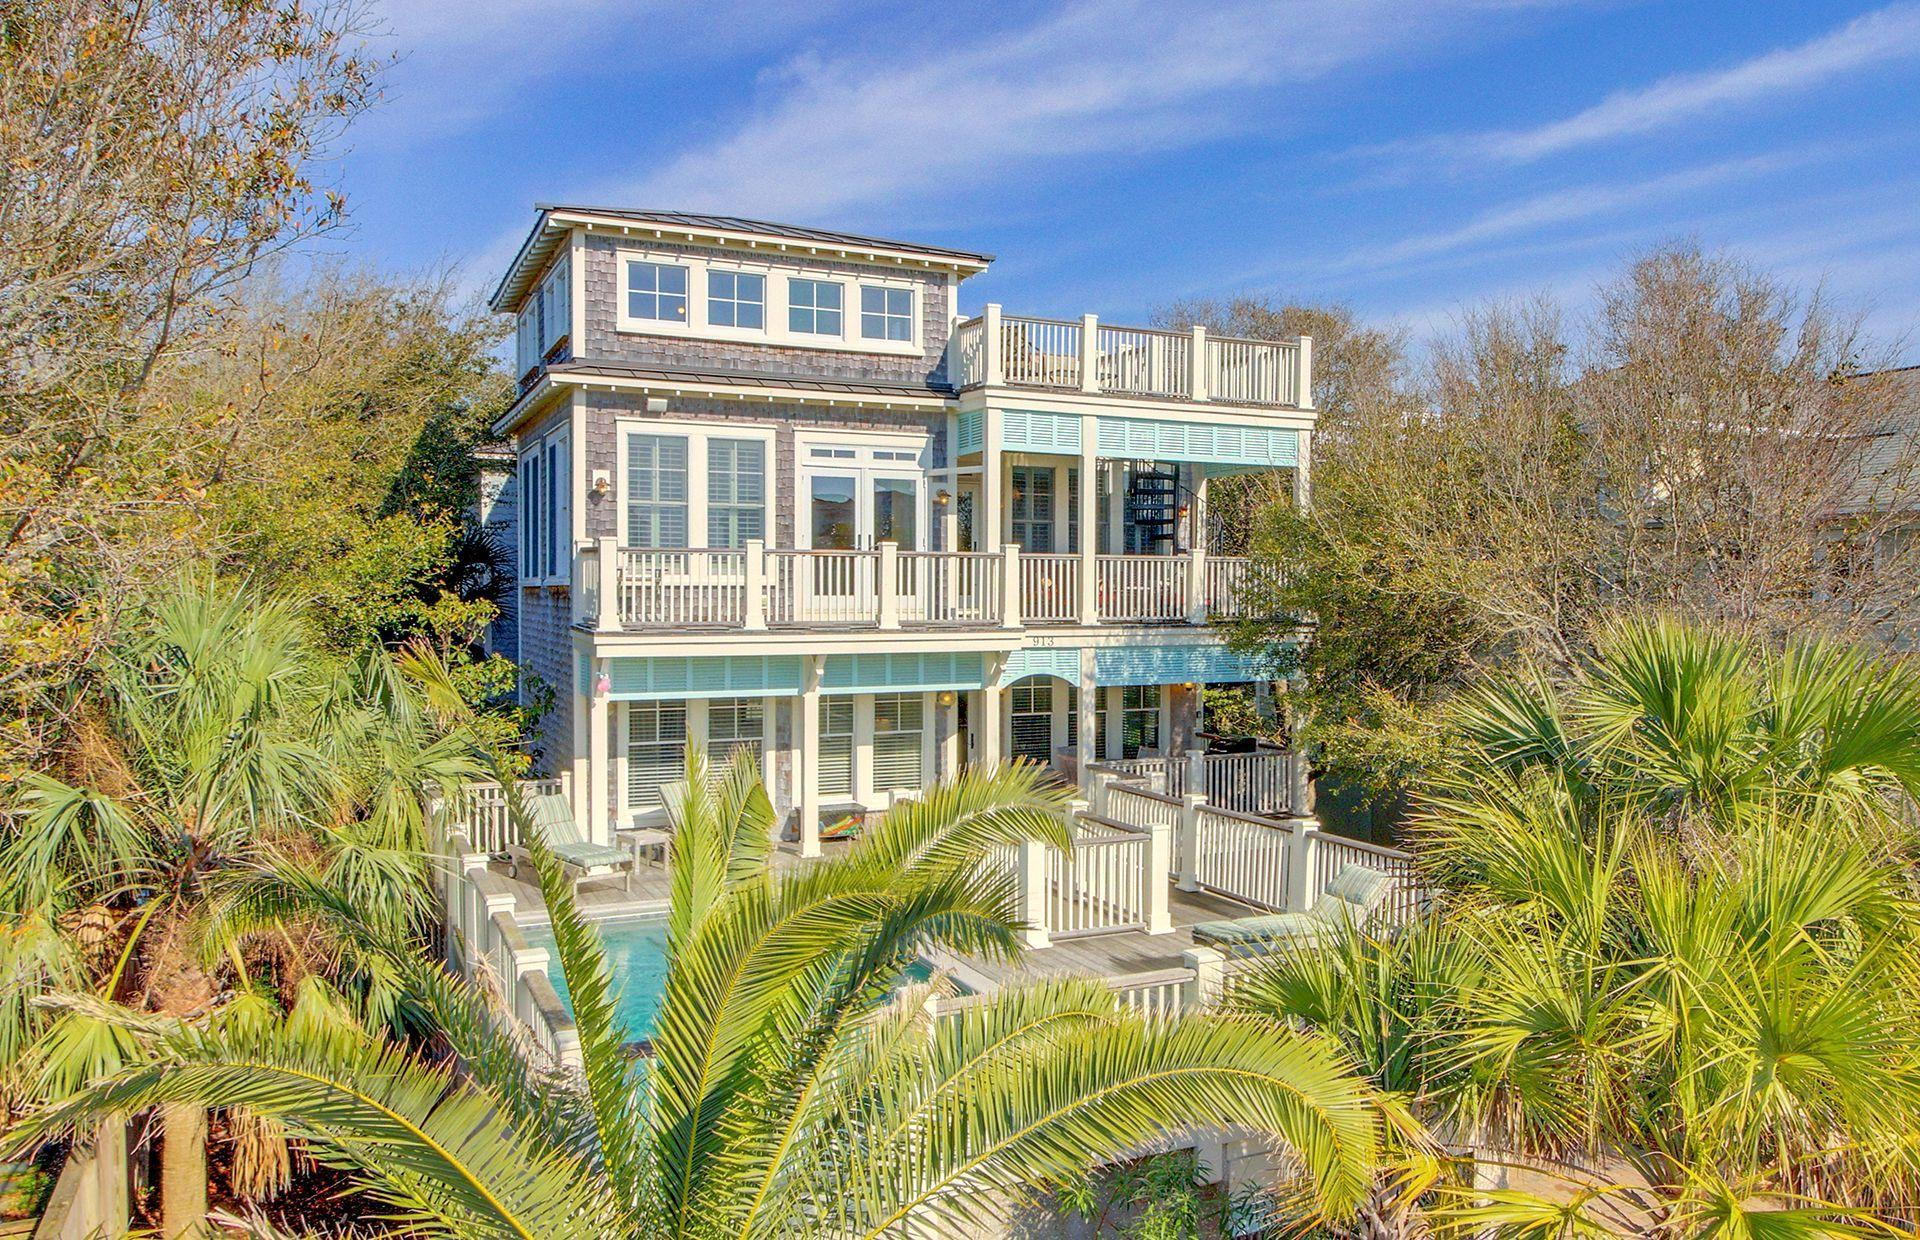 """This home was built in 2004 by Thomas Evans Construction, one of the island's finest builders. The home was renovated in 2011, has since been well-maintained and is currently a super performer on a vacation rental program, It would also make a great primary or second home. This one has all the bells & whistles including an elevator to all three floors, an elevated pool, and ocean views from the roof deck. No expense was spared in the custom bead-board and V-groove paneling, plus plantation shutters. The great room has dramatic high ceilings, clerestory windows and a fireplace flanked by custom built-ins. You will love the open reverse floor plan with the living areas on the top floor. High end finishes include cherry hardwood floors, maple cabinetry, tile and natural stone. Please click The kitchen is state-of-the-art with black granite counters, separate wine refrigerator, and stand-alone ice maker. There is island seating and the dining room features a long farm table to seat a crowd. There is a walk-in pantry and a powder room nearby. There is one master bedroom on the main/top level, as well as an office currently used as bedroom #7. A covered porch on this level has spiral stairs leading to an ocean view roof top deck.Down one level is a second master bedroom and another deluxe master bath.  This level has two rear bedrooms with a shared bath between them.  One is furnished with a king size bed and the other has a queen bed. A """"bunk"""" bedroom that sleeps four, the front queen bedroom, laundry room and a hall bath complete the middle level.The elevated pool is accessed from the middle level of the home.  There is a large sundeck surrounding the pool as well as a covered porch for those who prefer the shade.The ground level (which meets the required minimum elevation for flood insurance) has a large game room, a wet bar and a full bathroom. There is also a very large owner's storage room located on this ground level. A rear patio off the game room and a two car ga"""